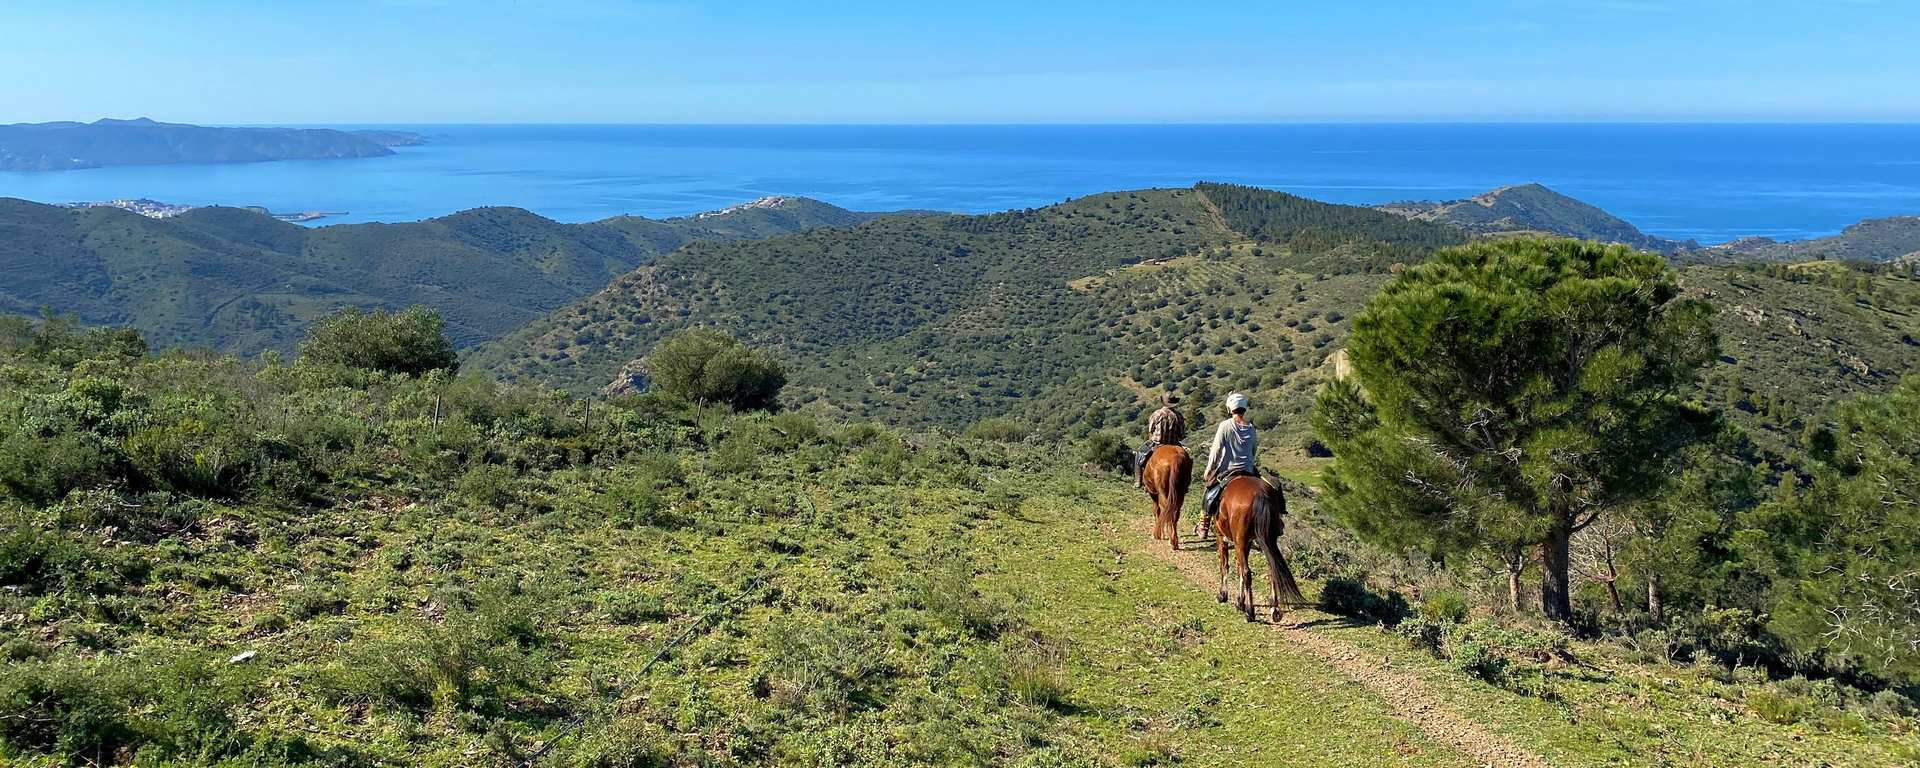 Trail riding by the sea – enjoy the freedom of independent riding!